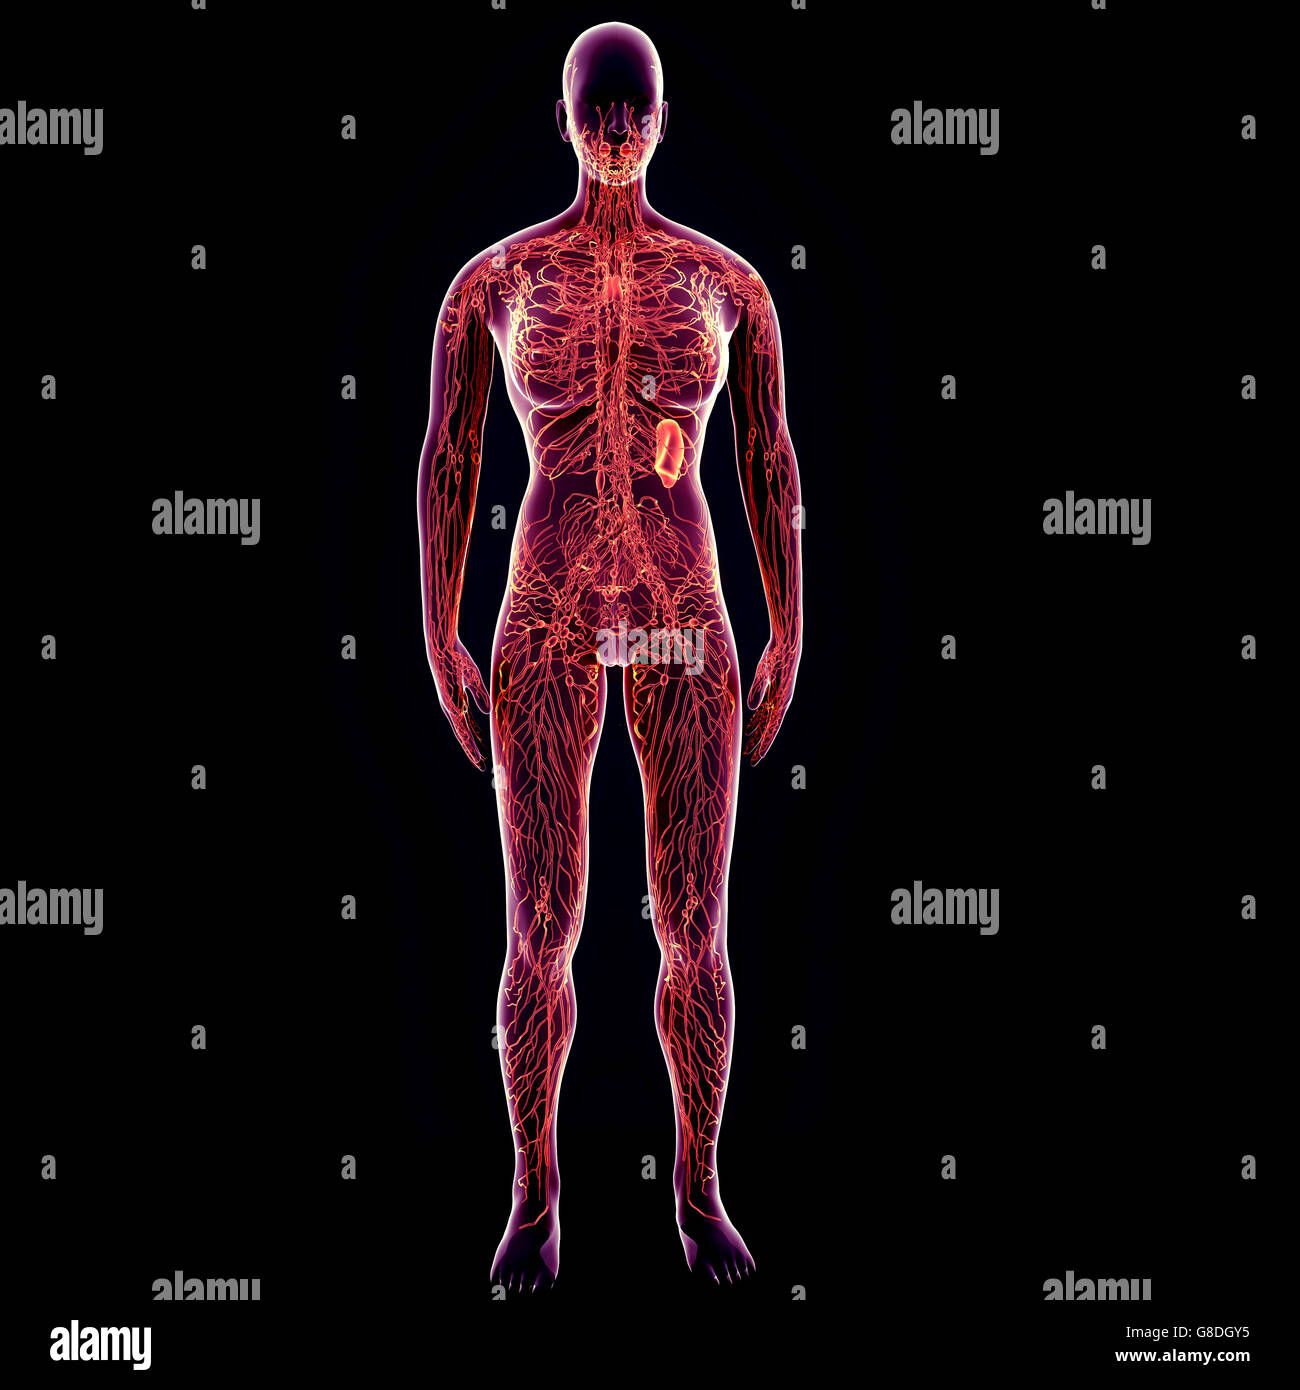 3d Illustration Of Human Body Nervous System Anatomy Stock Photo